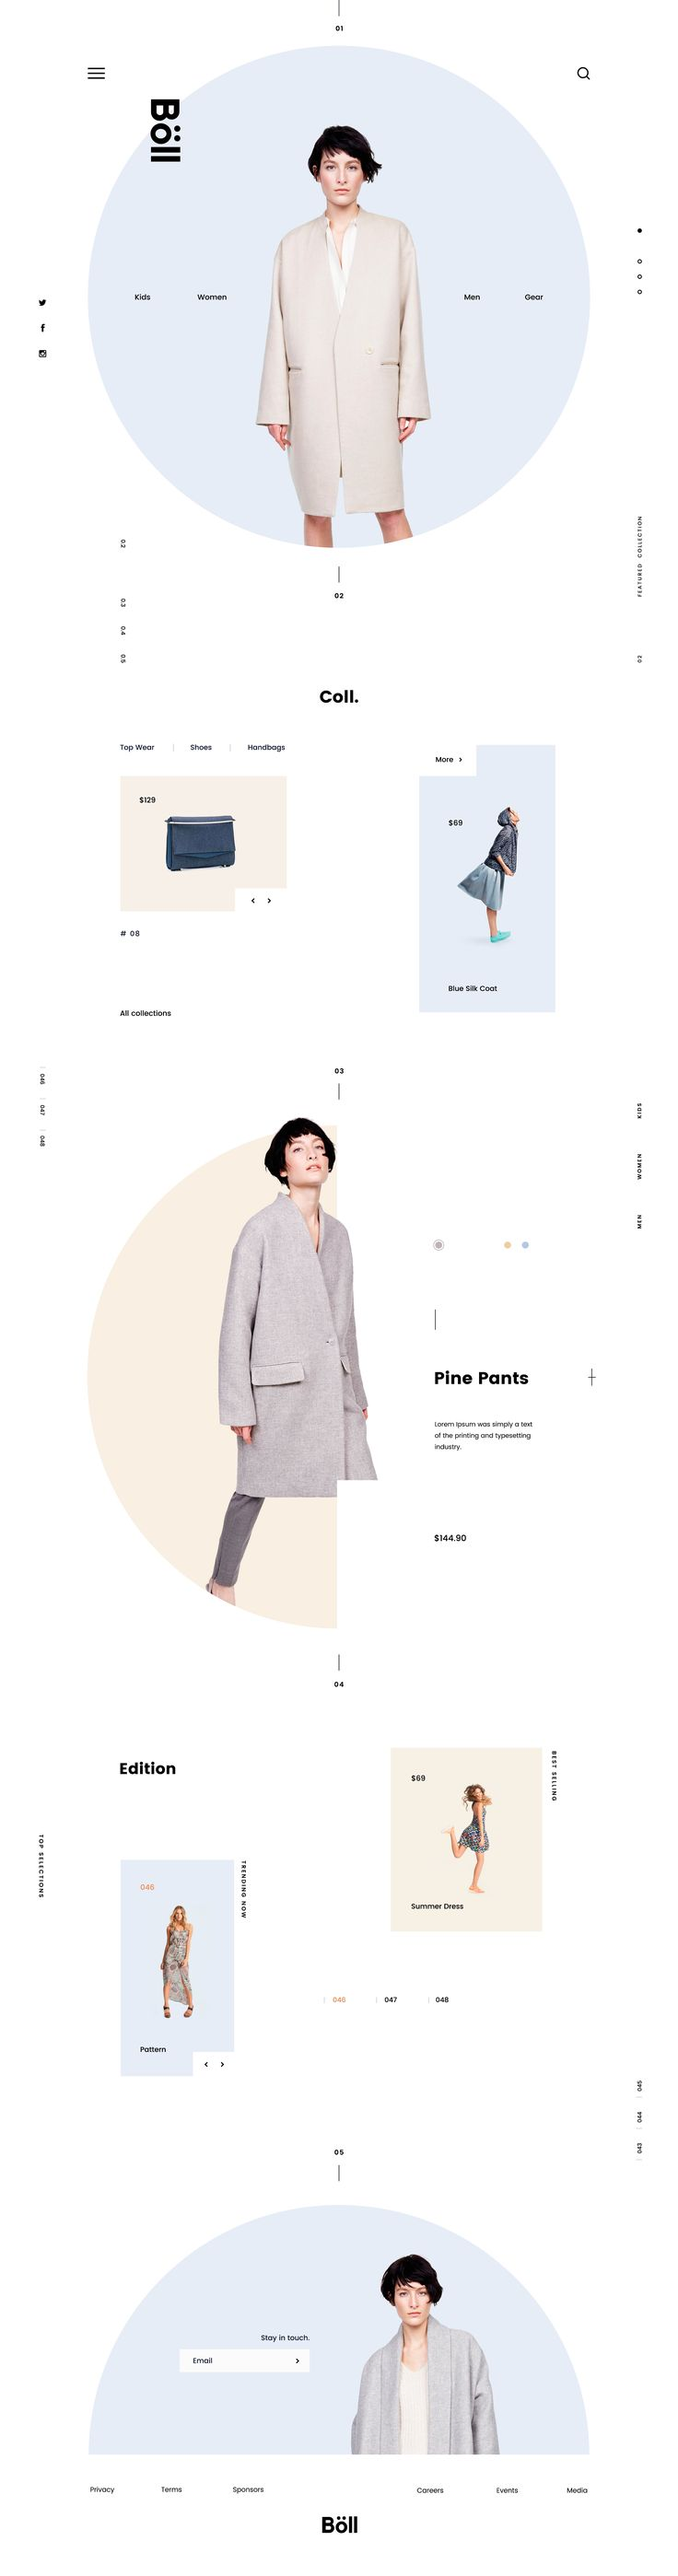 Website design for fashion e-commerce. Design style inspired from Scandinavian & Japanese fusion